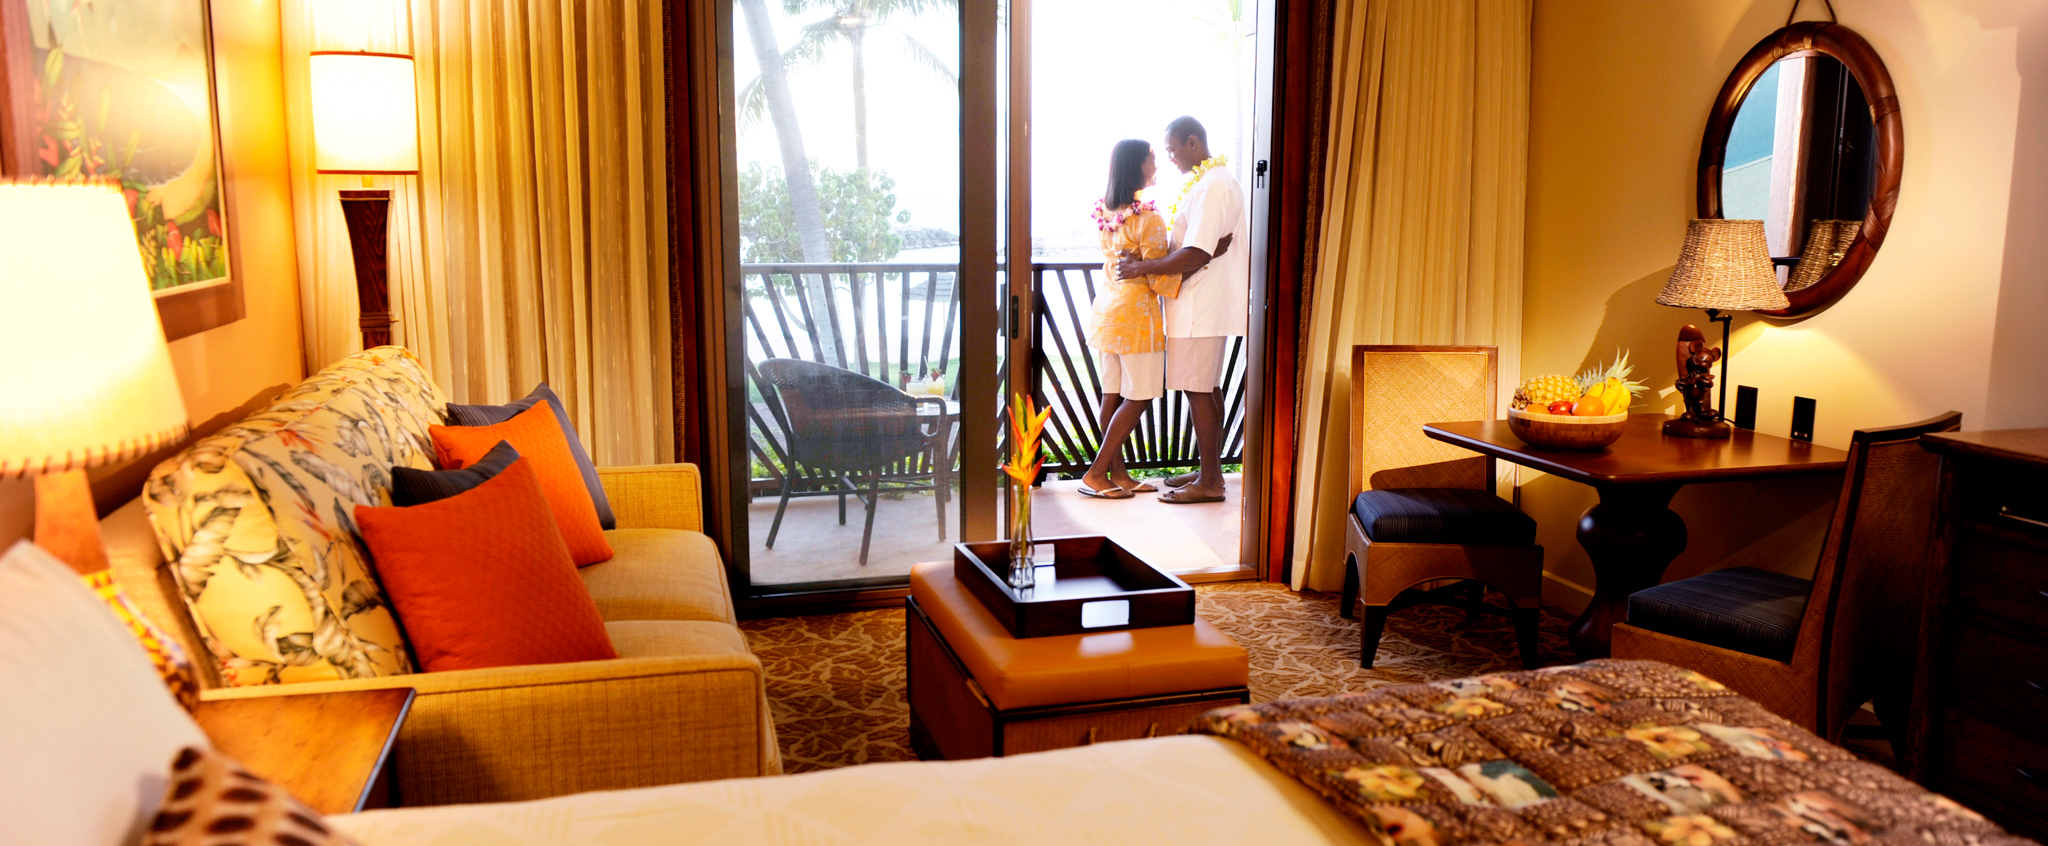 A couple embraces on the balcony of their hotel room featuring a large sitting area and Hawaiian décor